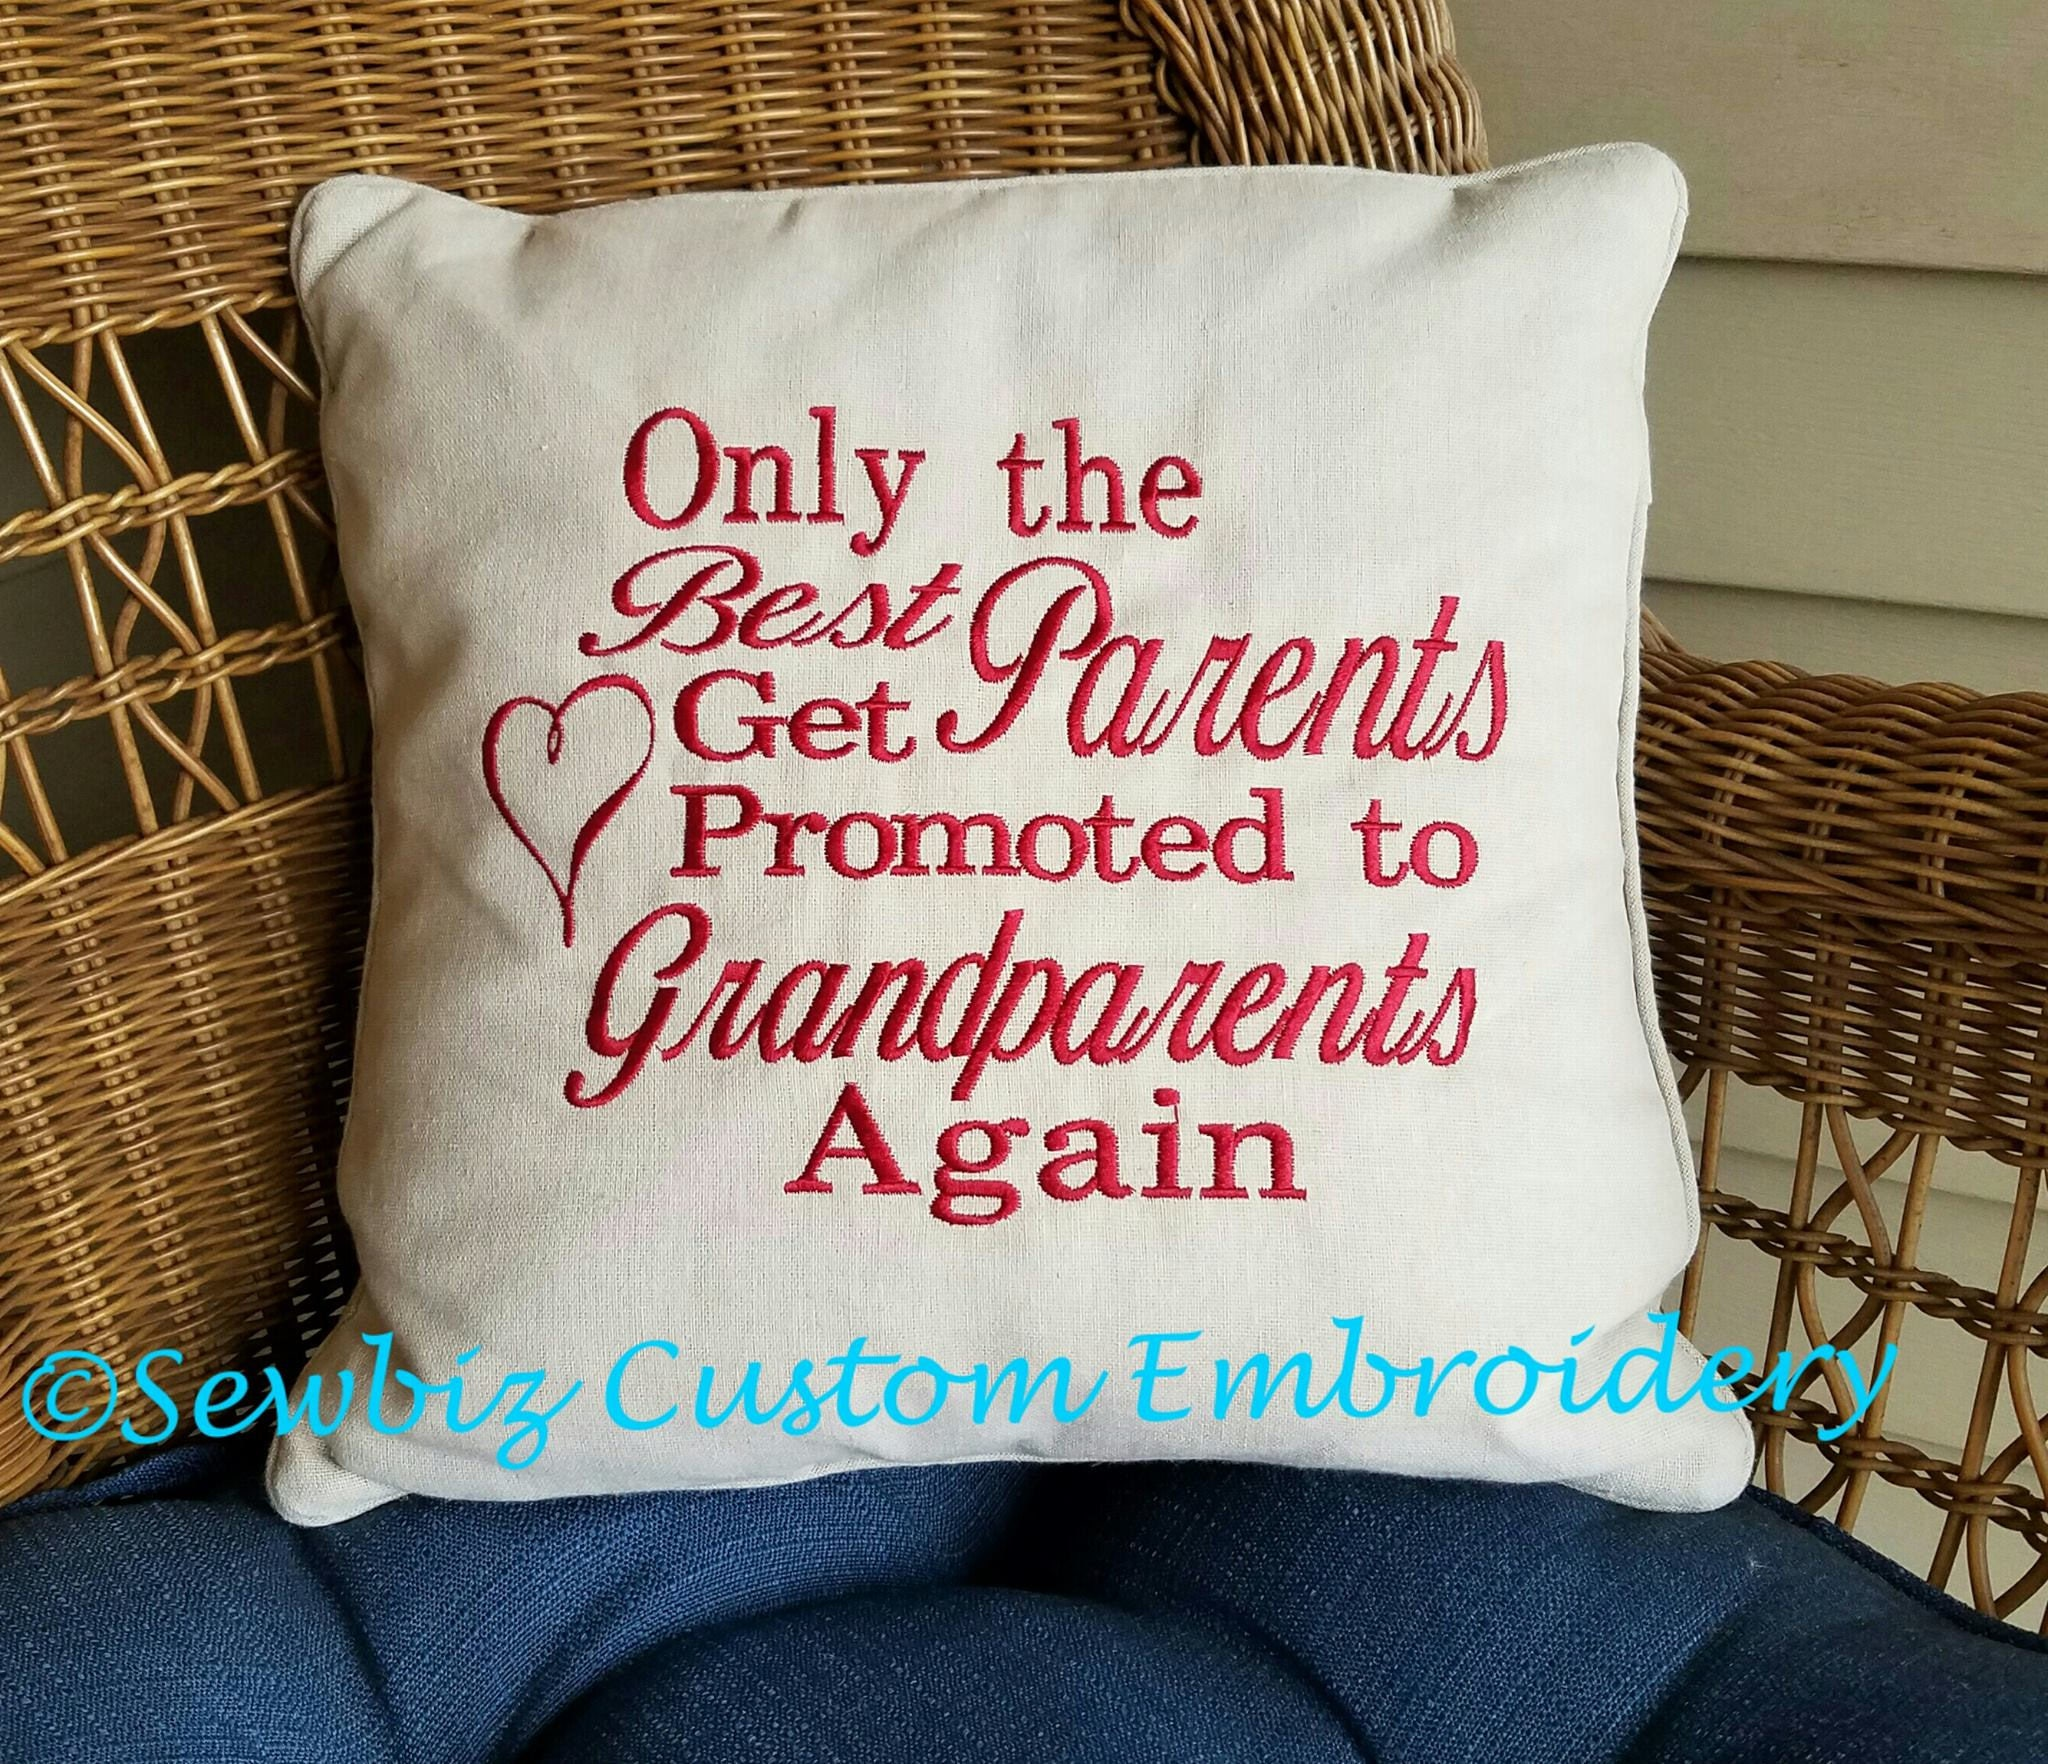 Personalized Pillows For Wedding Gift: Personalized Wedding Pillow Embroidered Pillow Wedding Gift